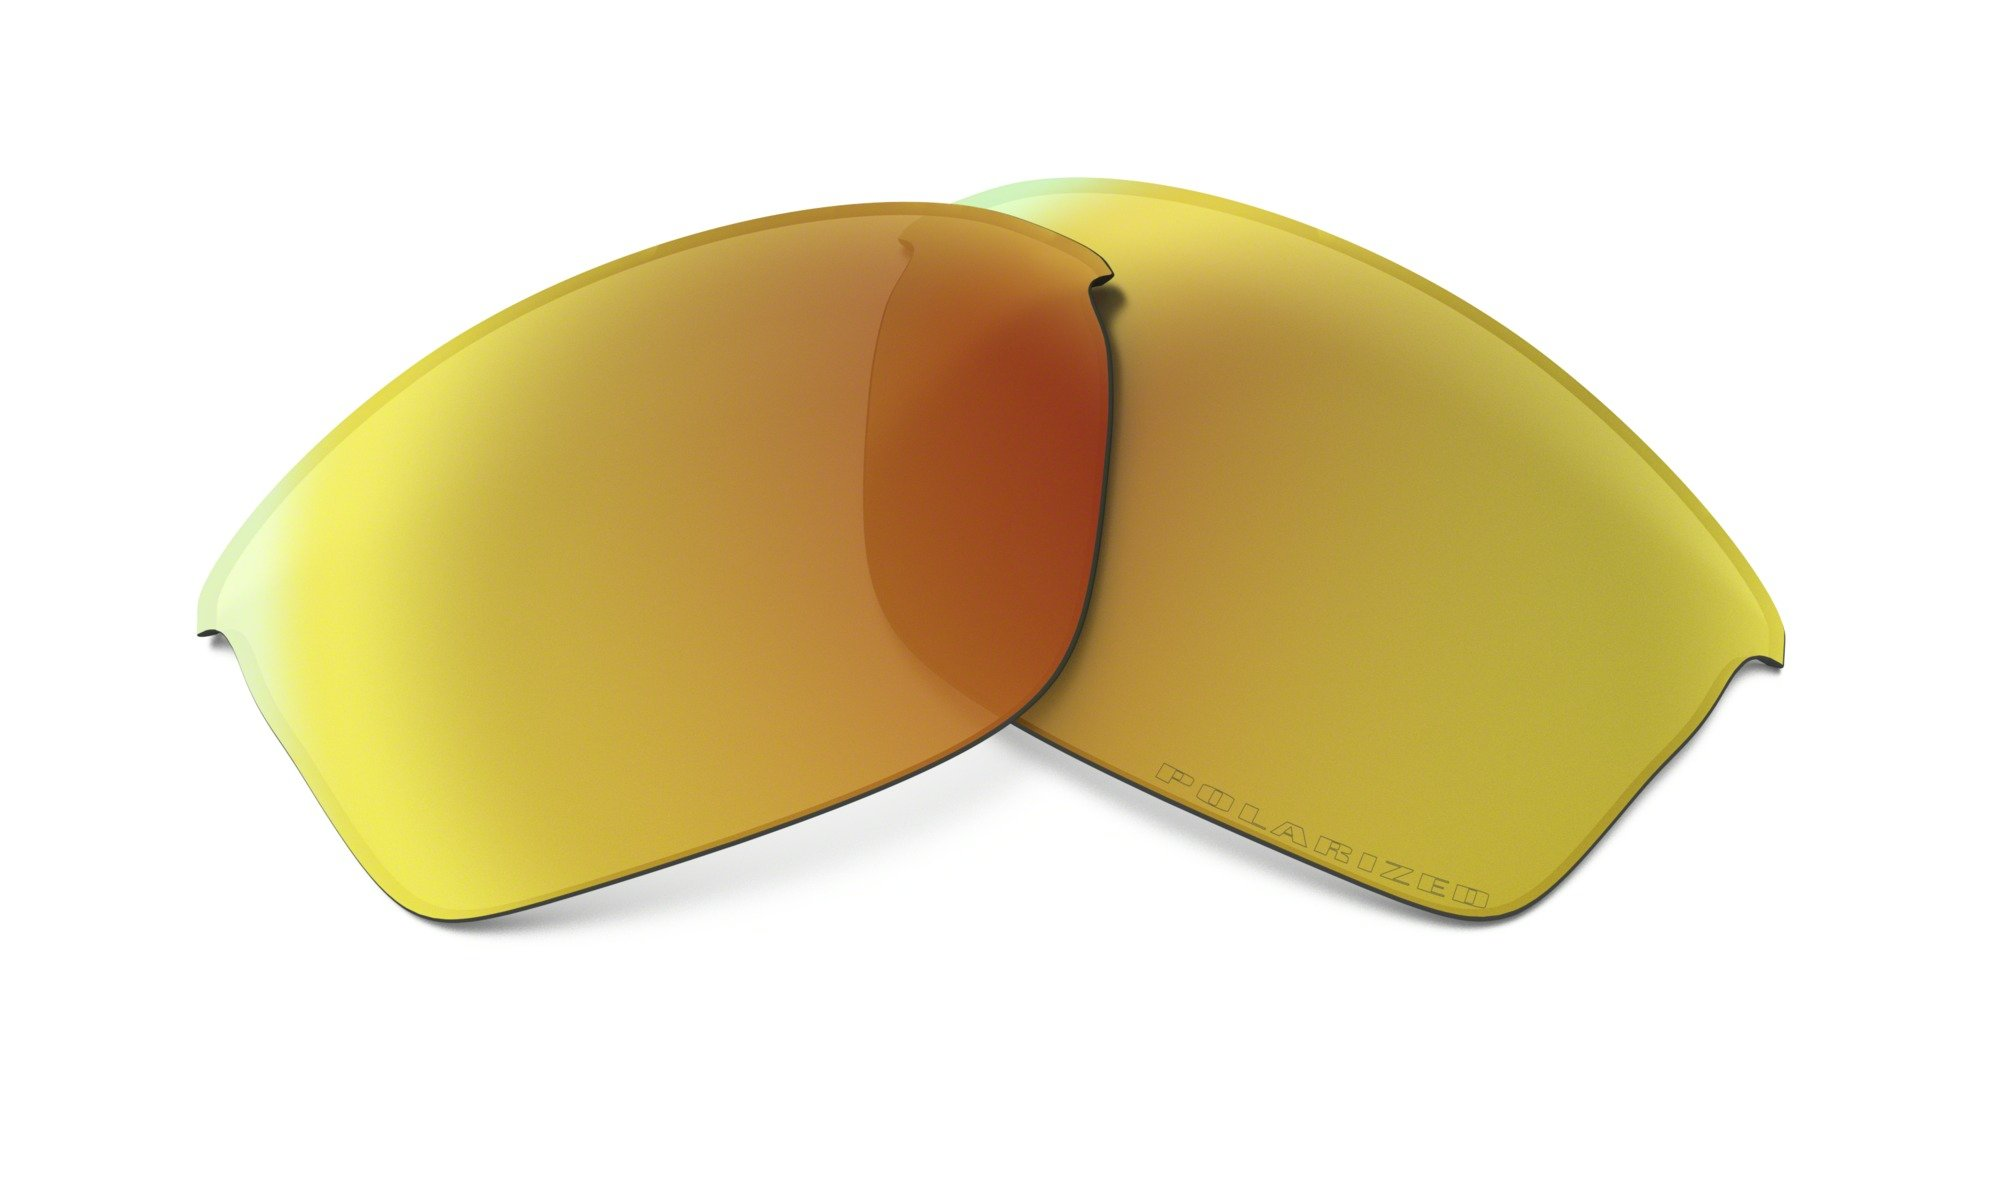 Oakley Flak Jacket Adult Lens Kit Lifestyle Sunglass Accessories - Fire Iridium Polarized / One Size by Oakley